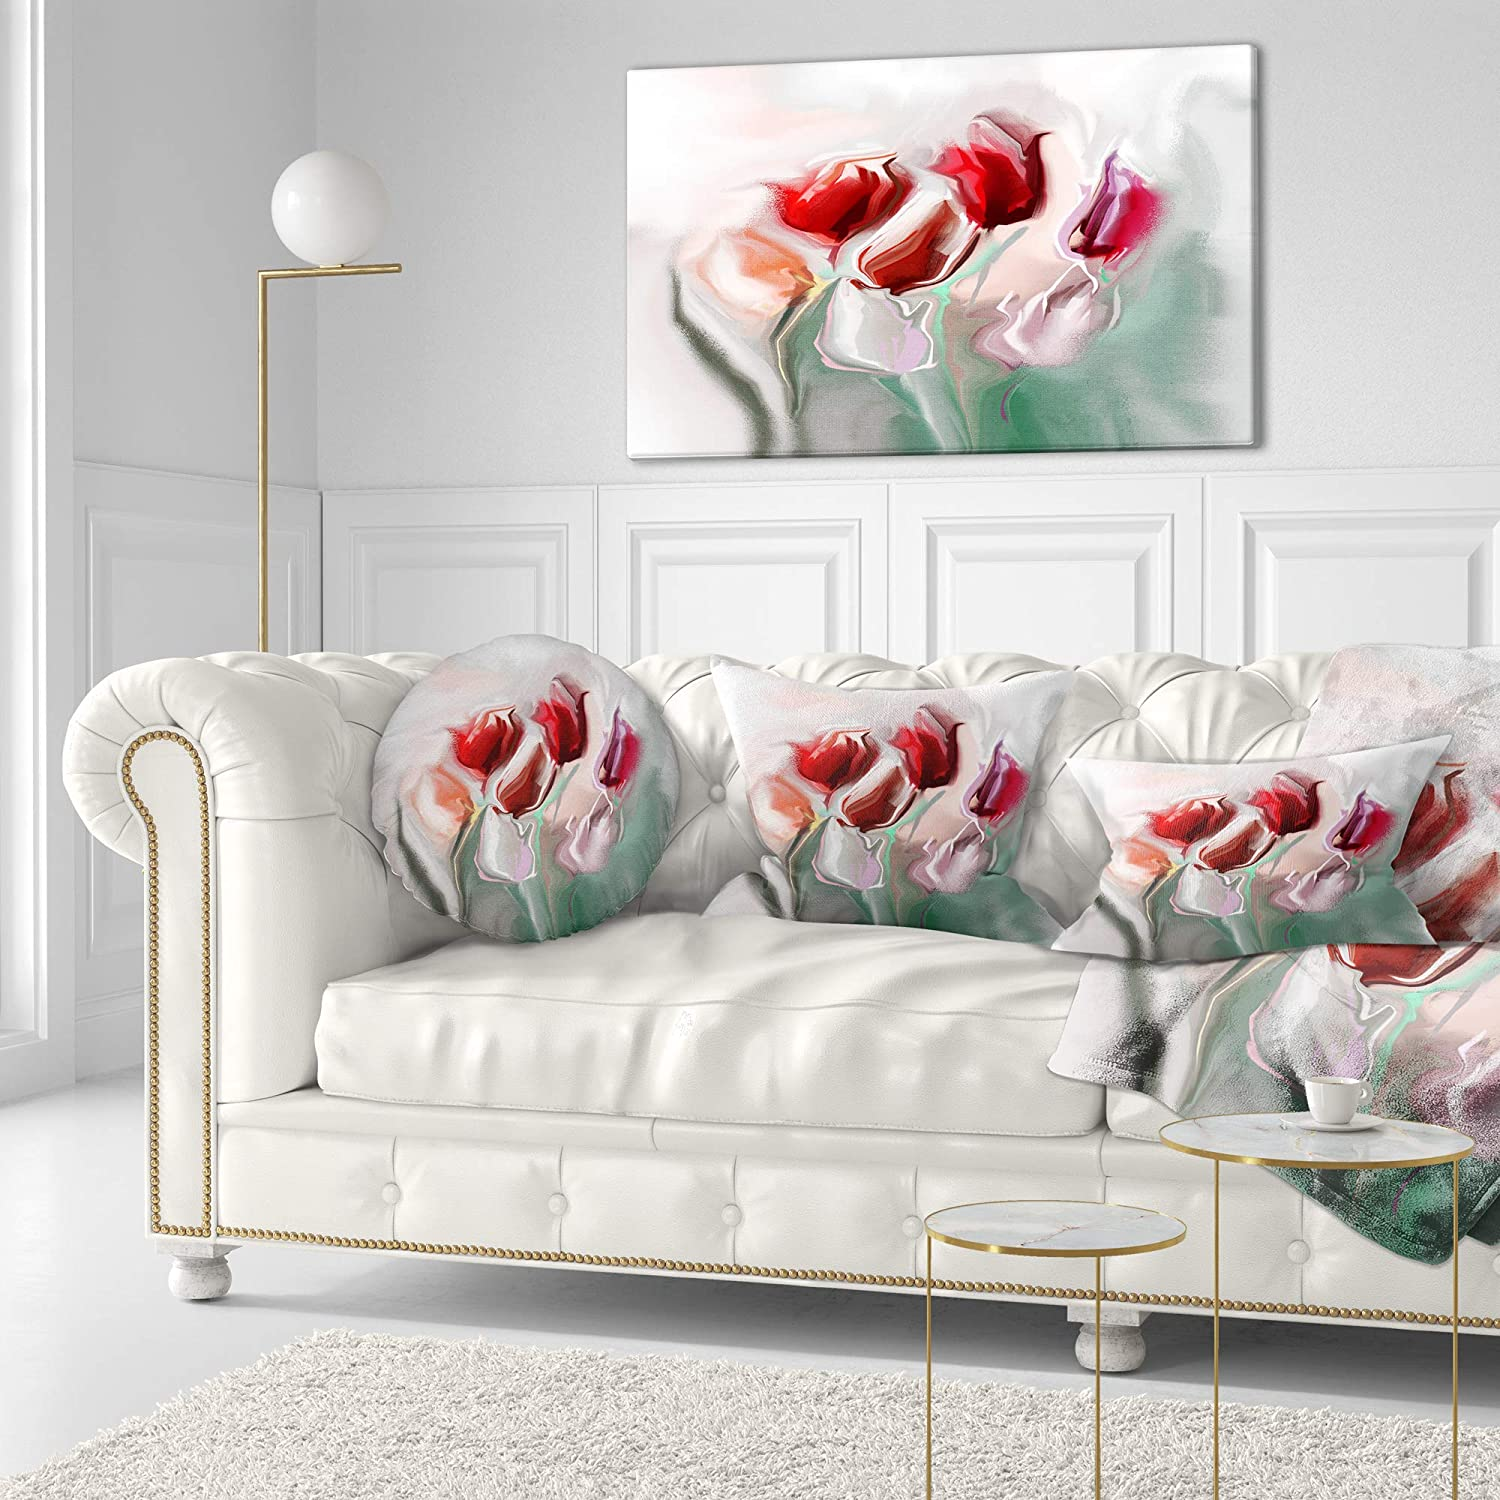 Sofa 20 Round Designart CU14385-20-20-C Floral Watercolor Illustration Animal Throw Cushion Pillow Cover for Living Room